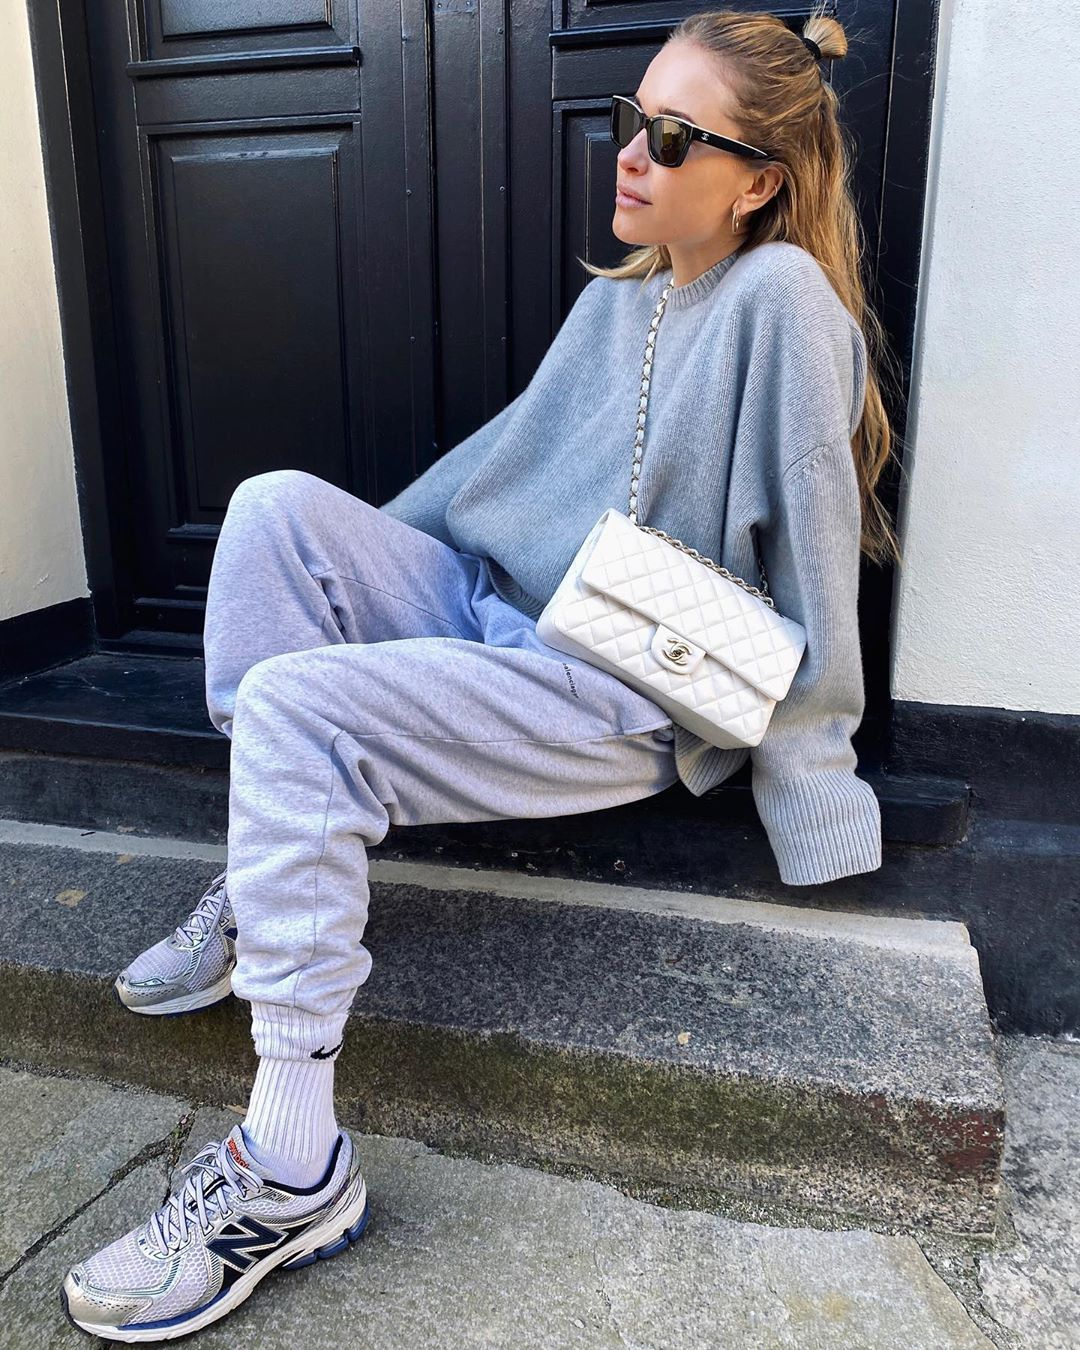 pernille-teisbaek-day-to-day-uniform-stay-at-home-instagram